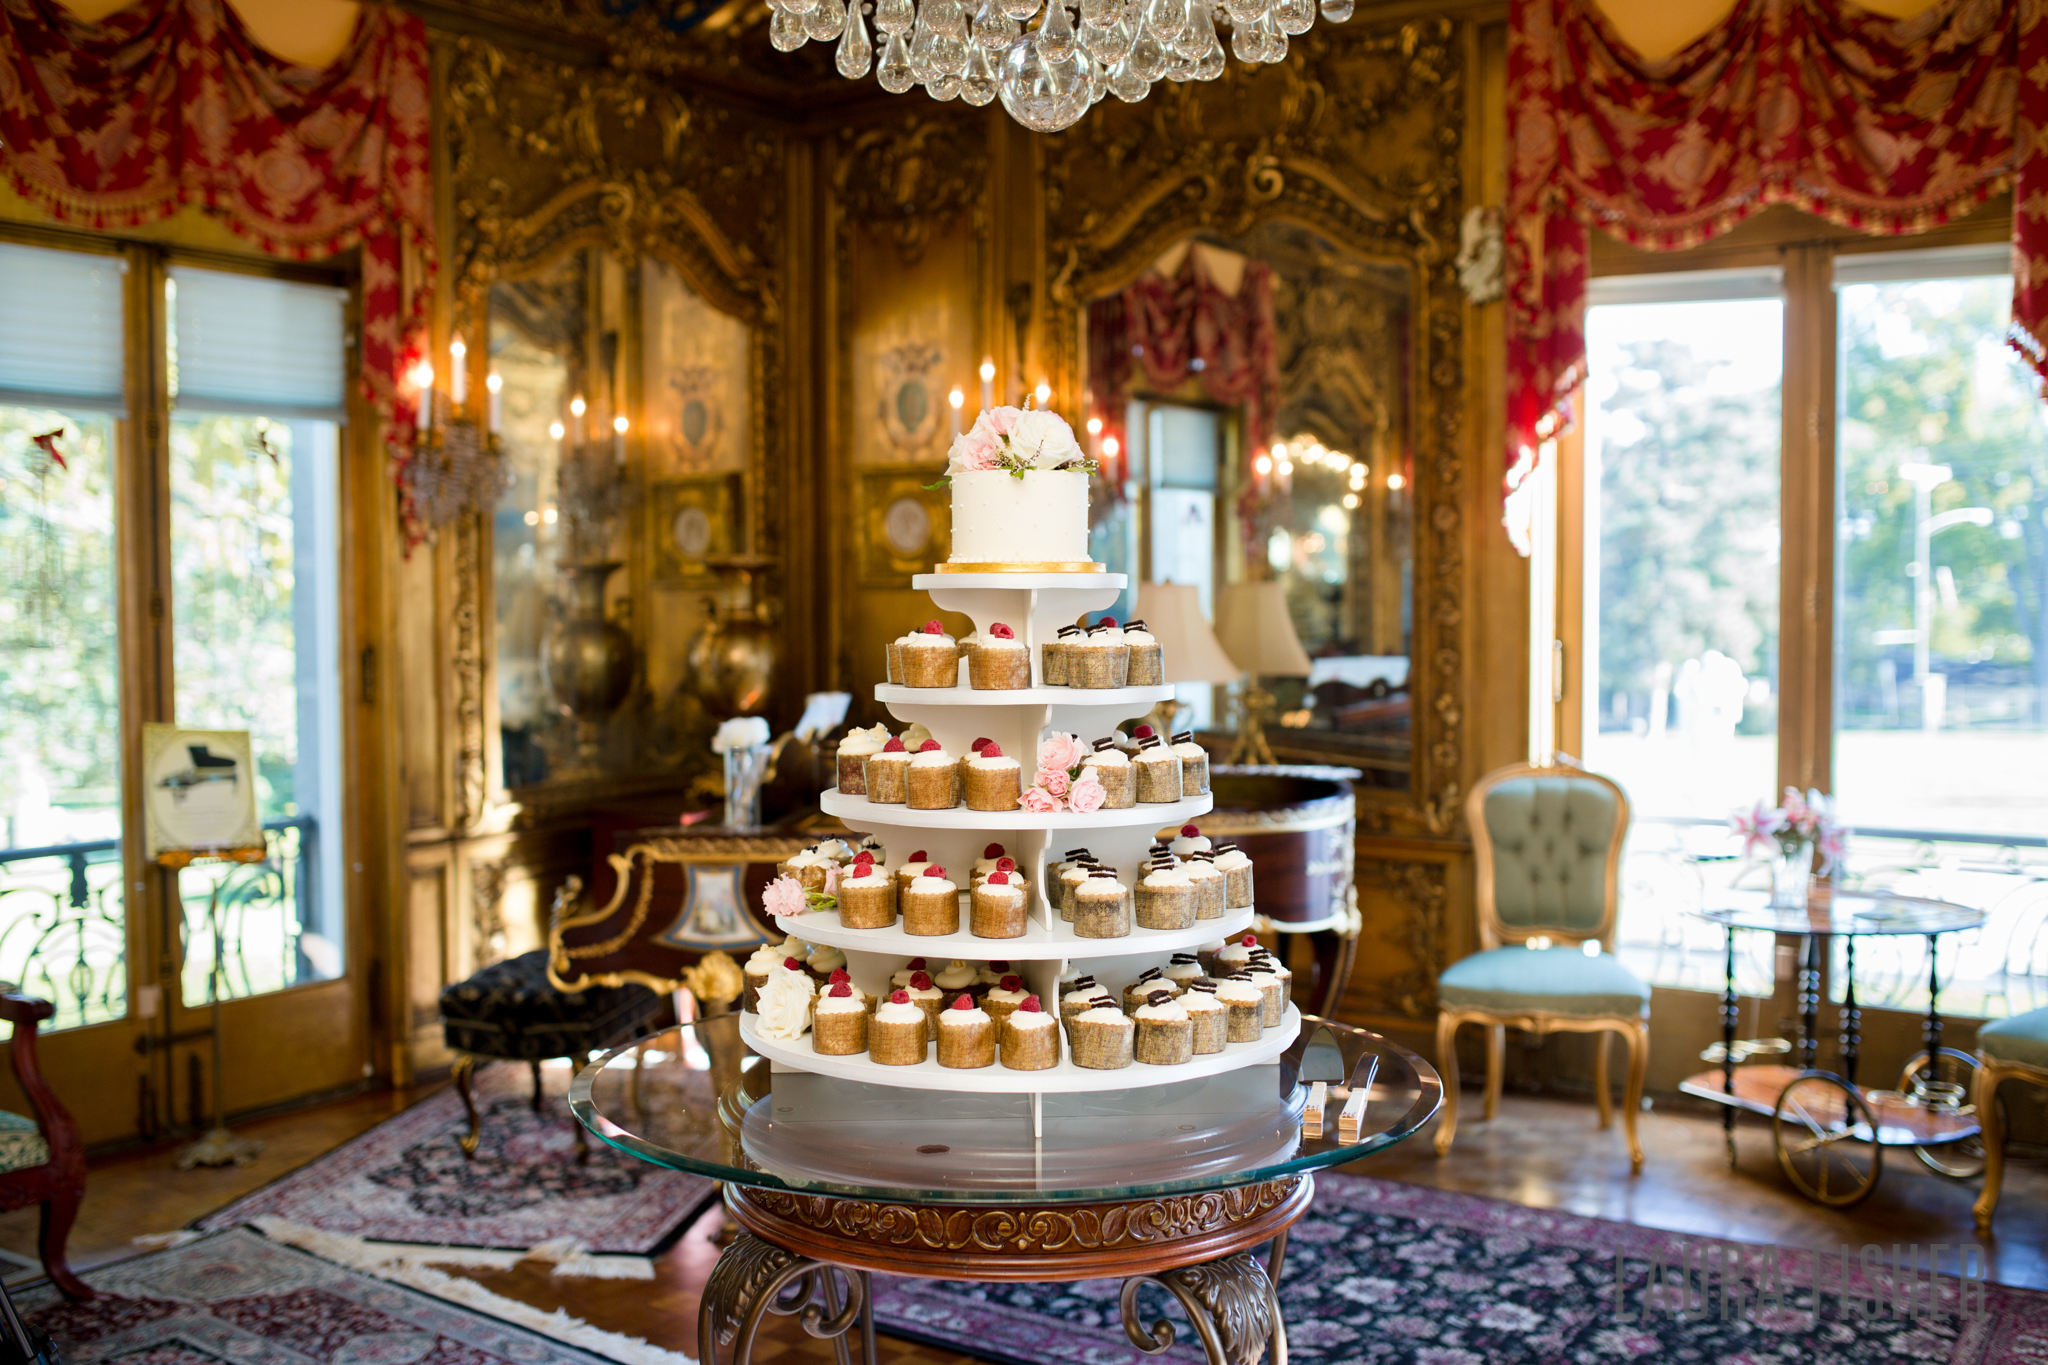 laurel-court-mansion-wedding-cincinnati-0121.jpg